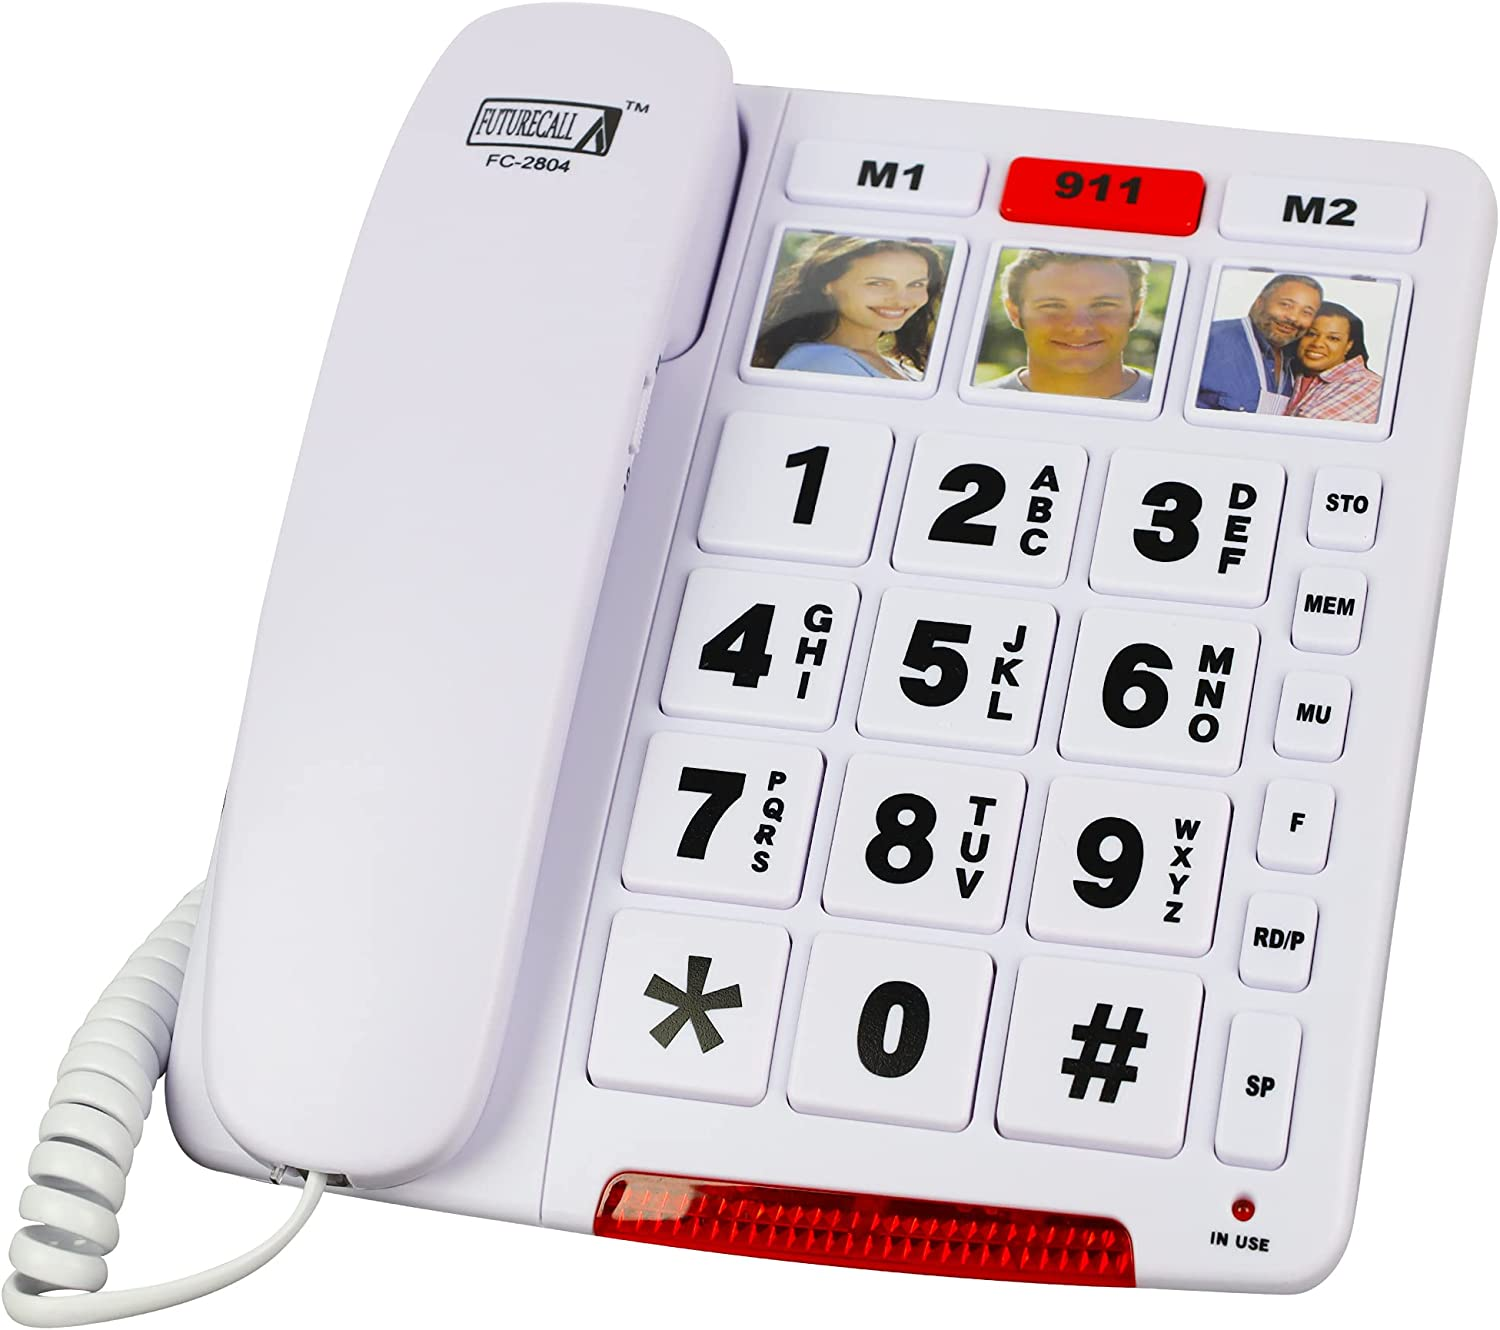 Future Call FC-2804 Big Button Phone for Seniors | 3 Picture Keys and Speakerphone | Amplified Telephones for Hearing Impaired Seniors 40db w/Extra Long 12' Cord | Simple Landline Phones for Seniors